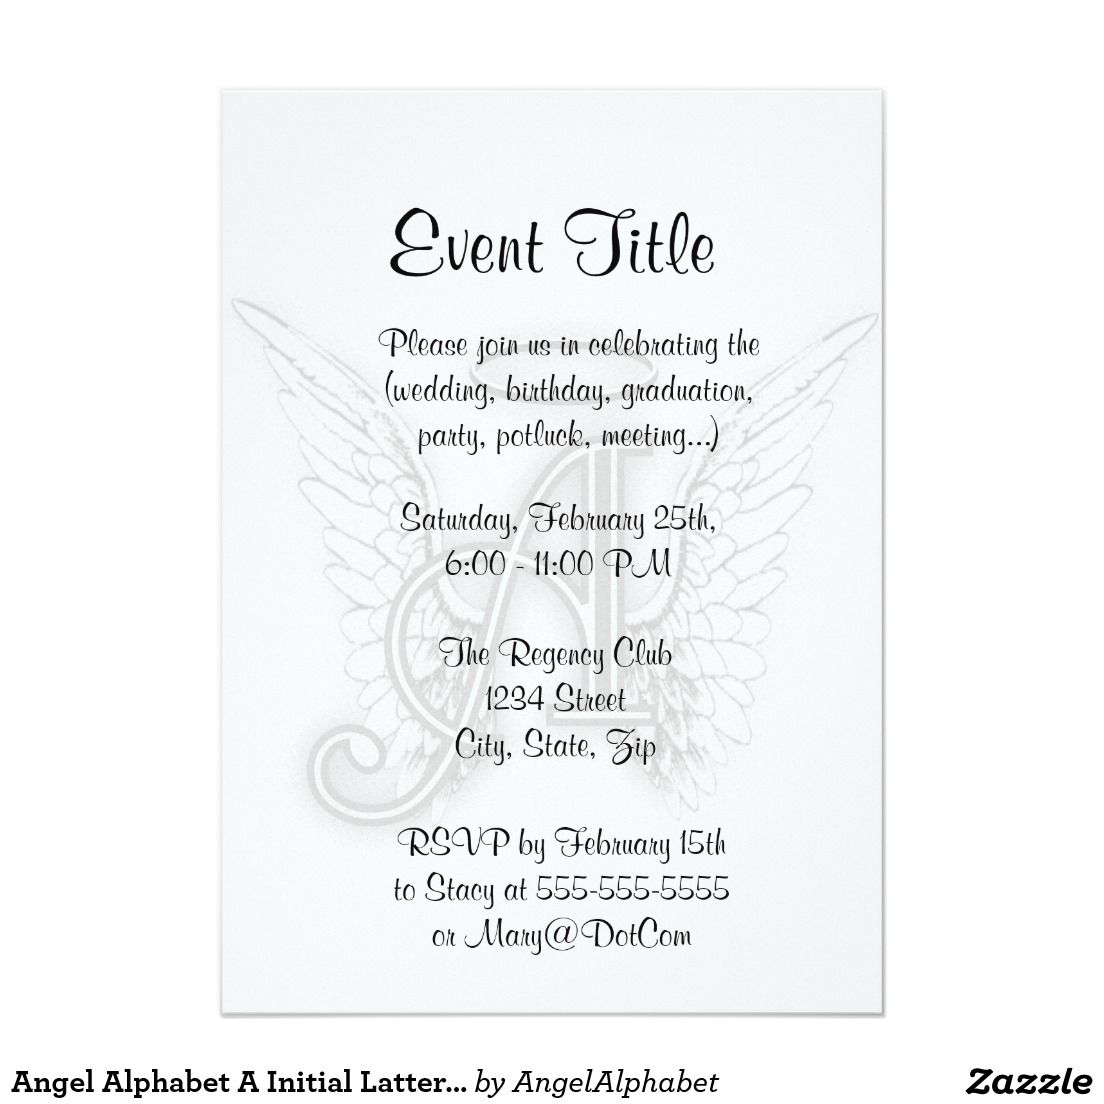 Angel Alphabet A Initial Latter Wings Halo Invitation